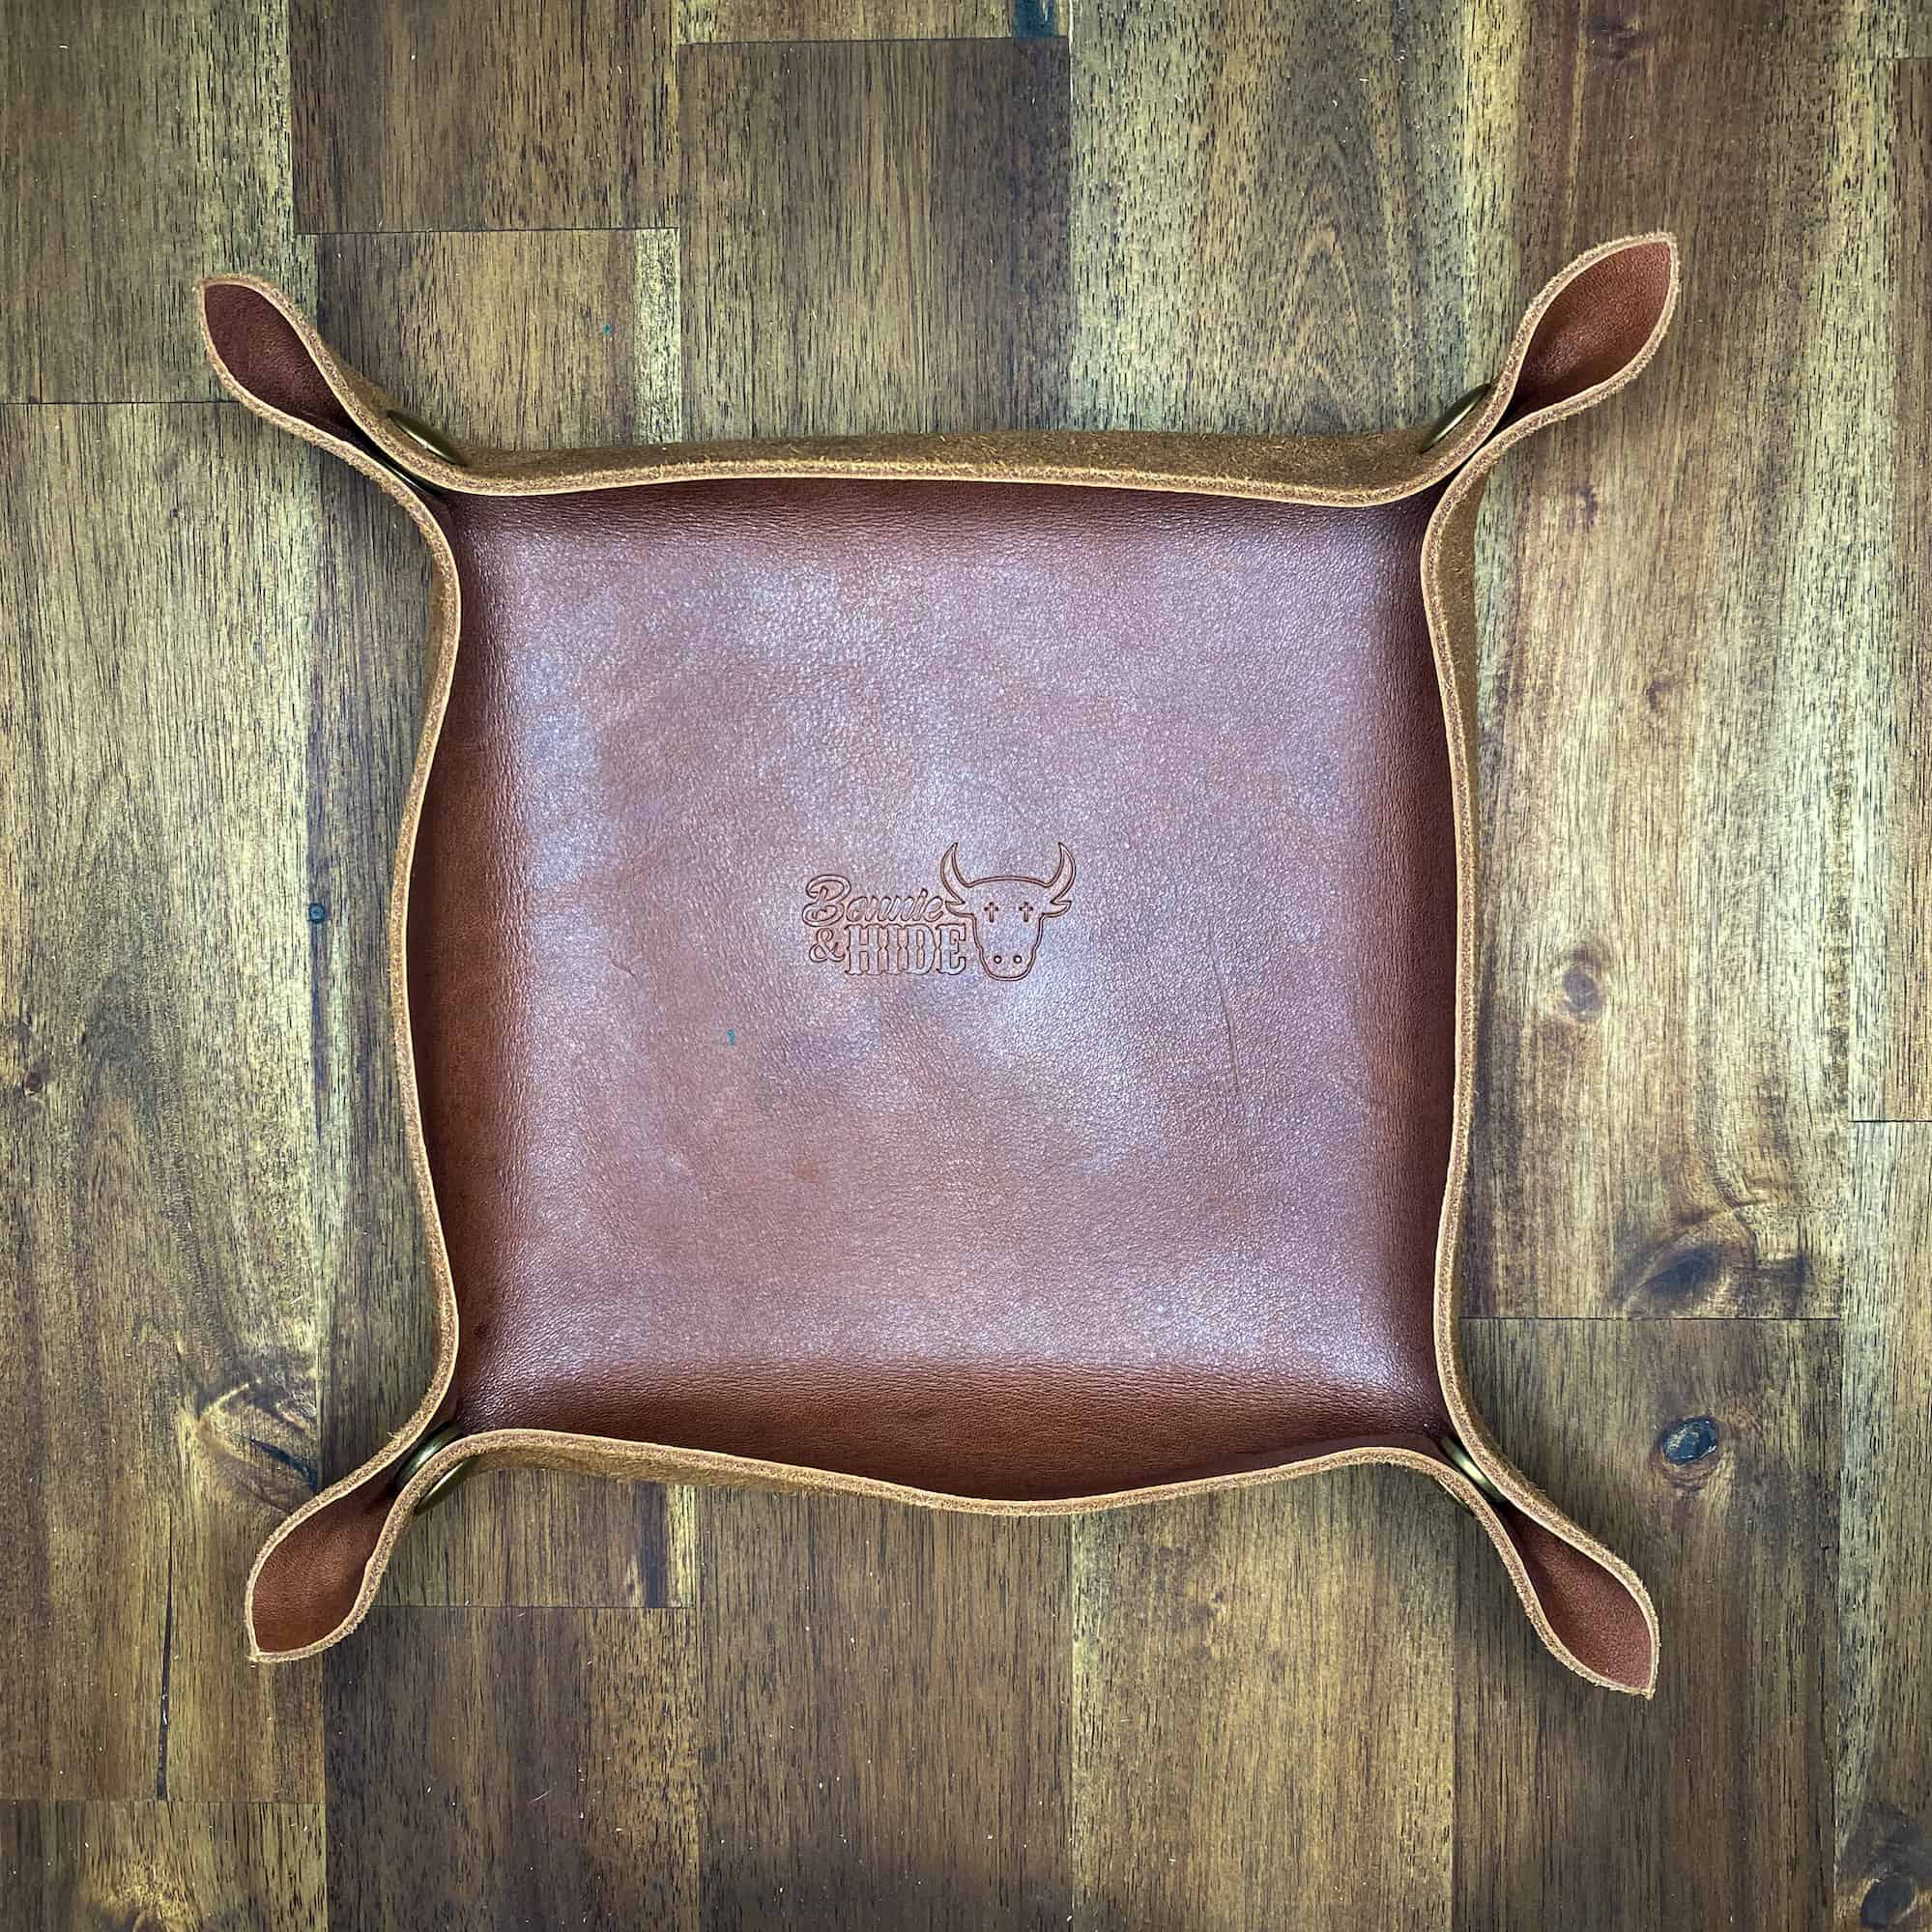 empty leather valet tray